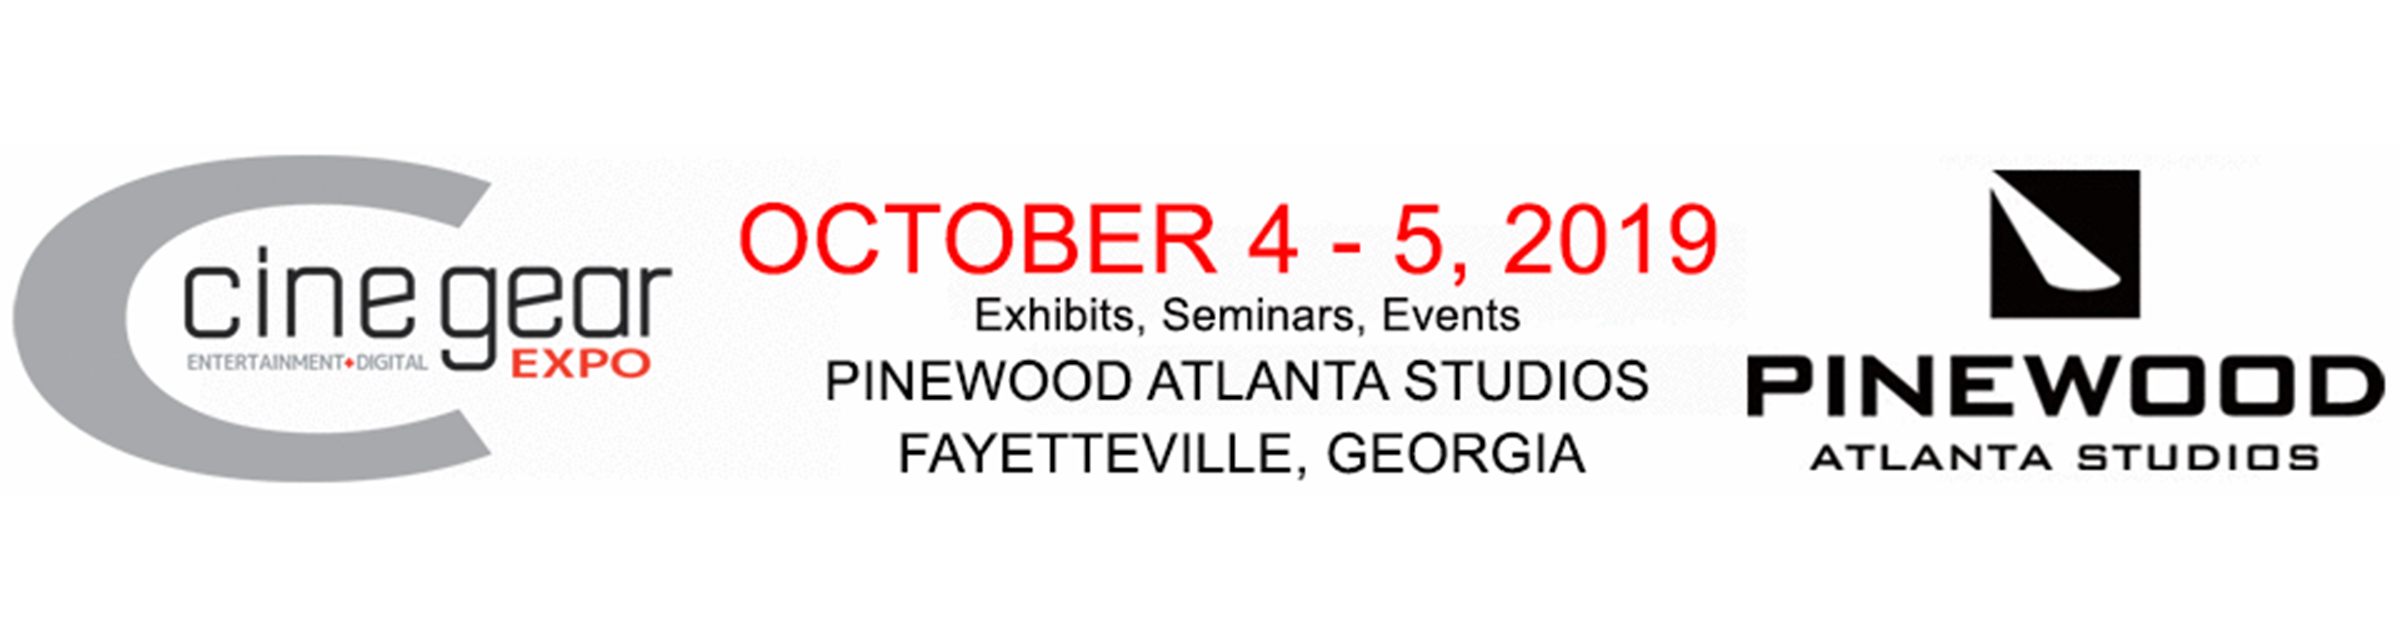 cinegear atlanta cine gear expo show panasonic booth schedule hours location